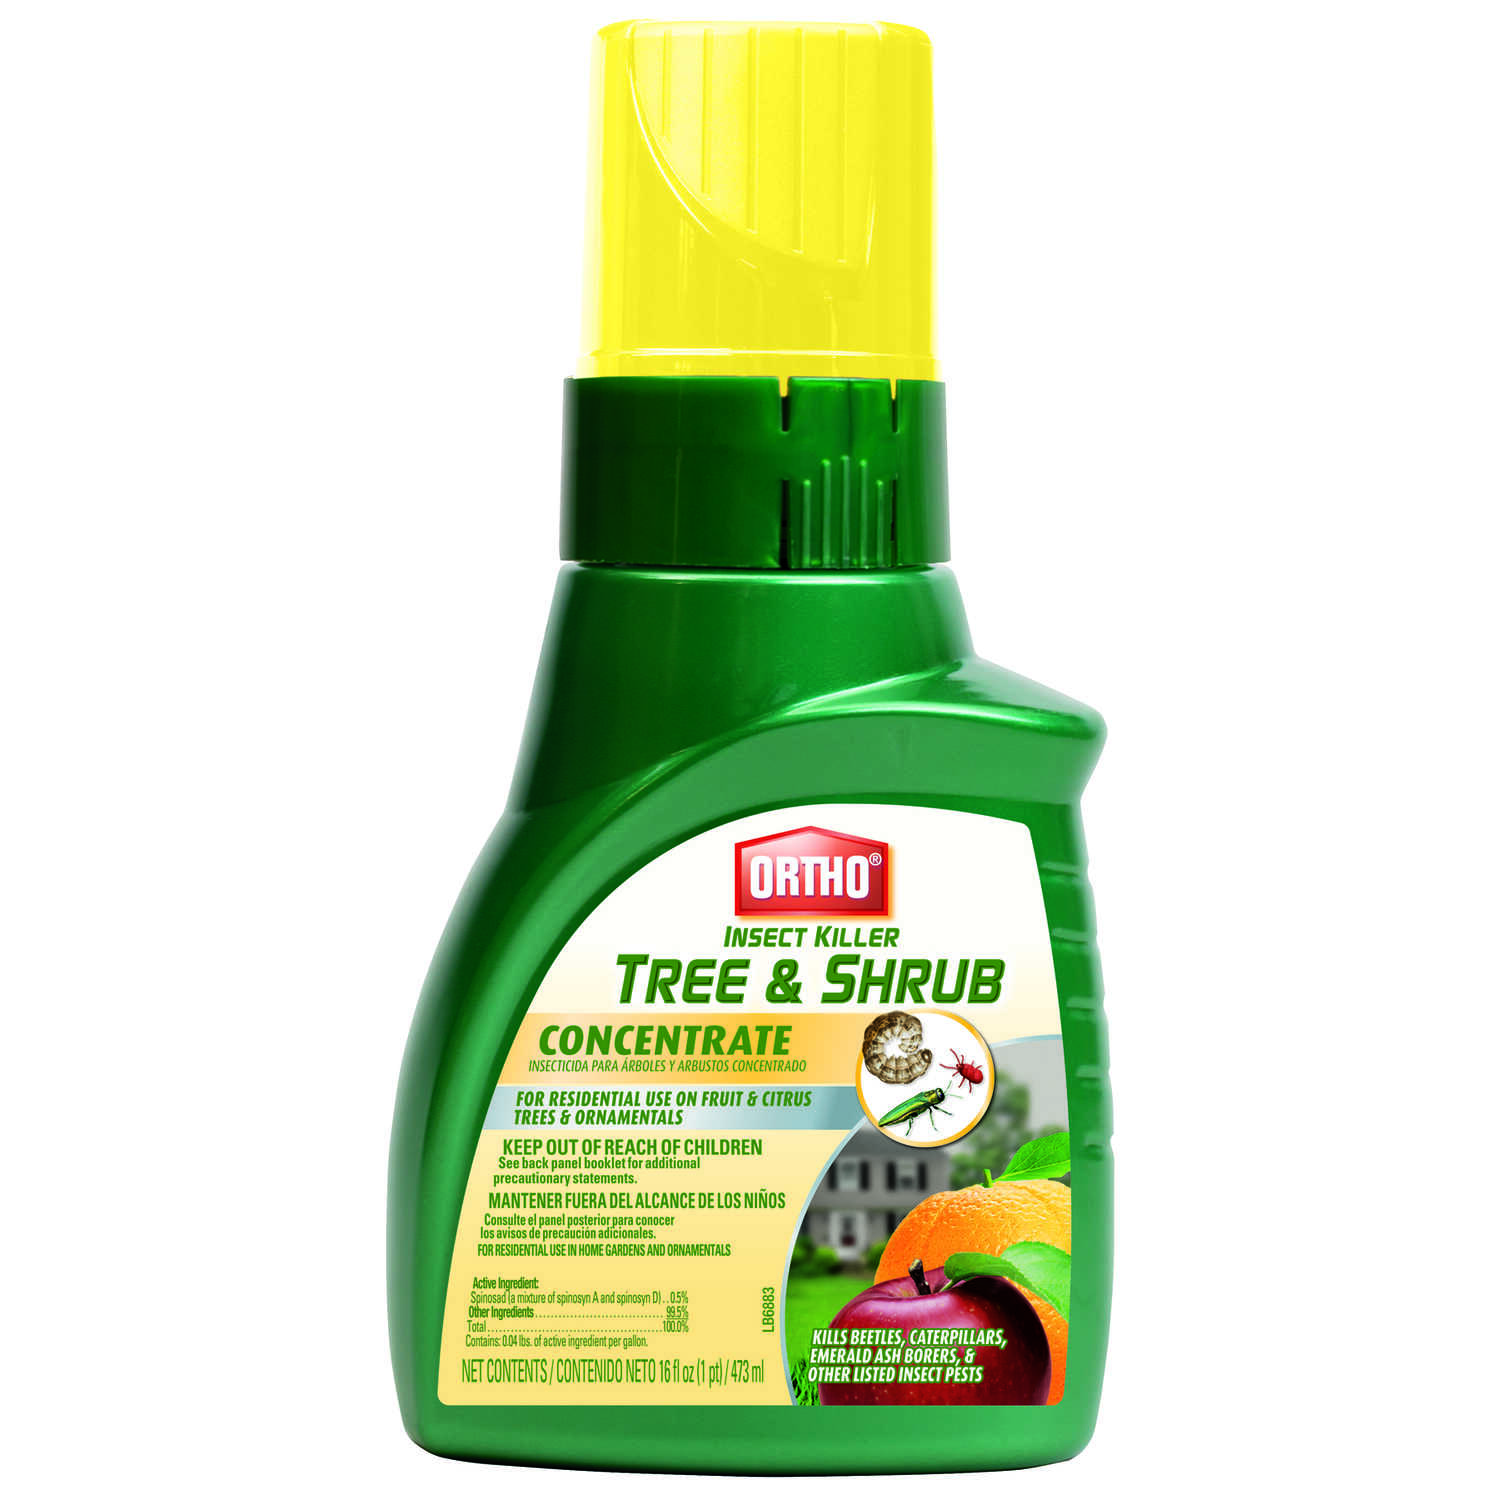 Ortho  Tree & Shrub  Insect Killer  16 oz.